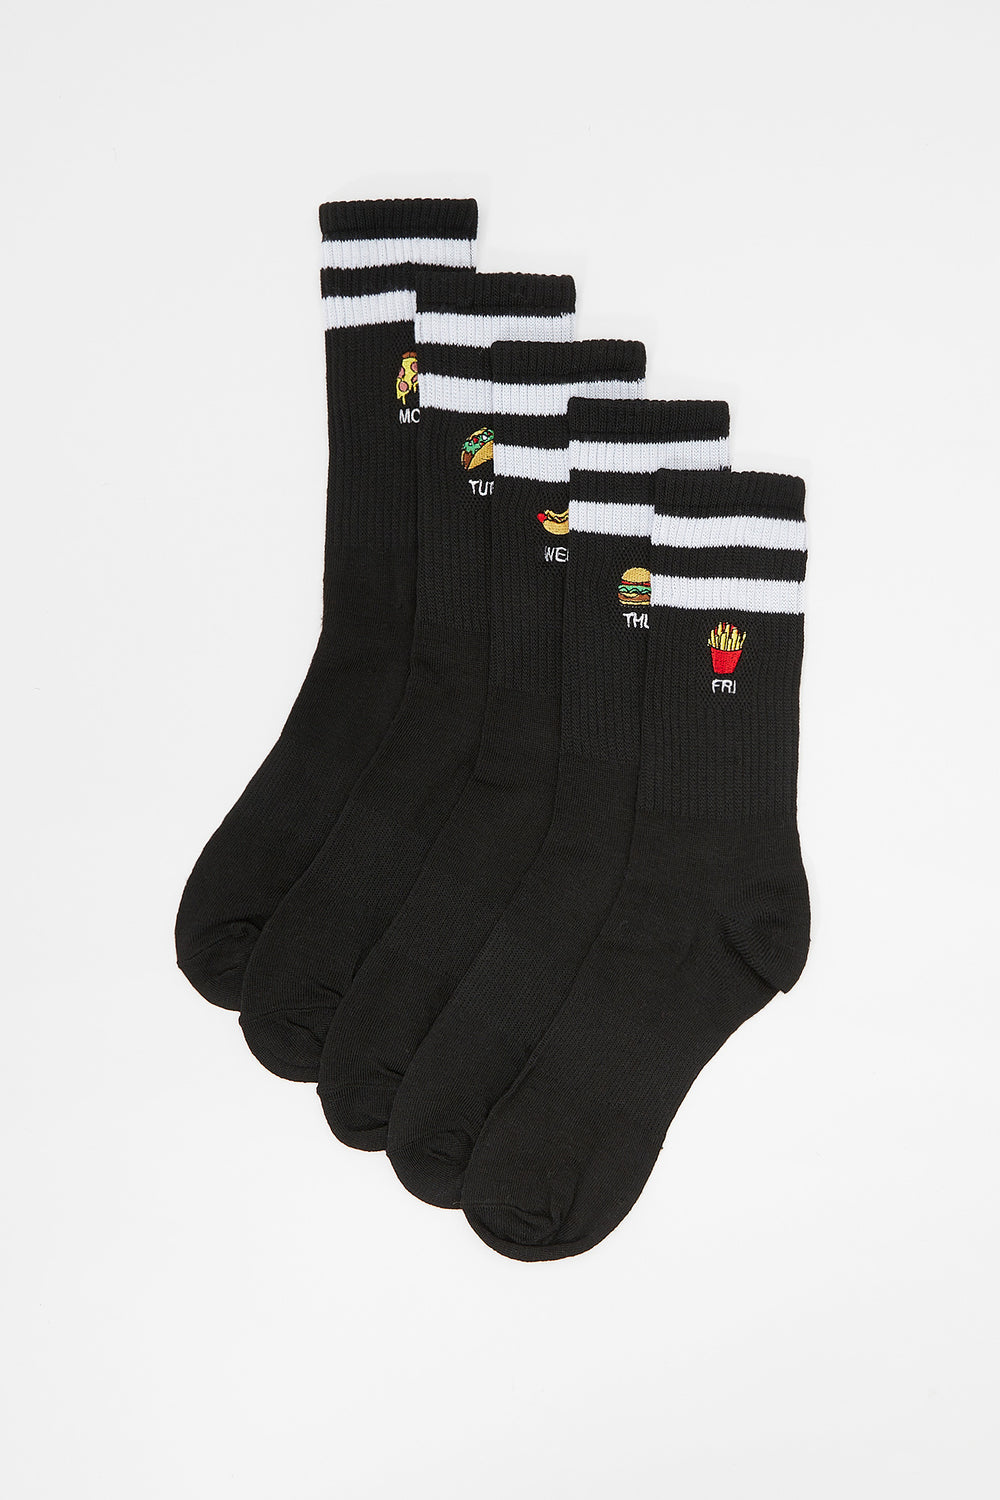 5 Paires de Chaussettes Fast Food West49 Junior Noir